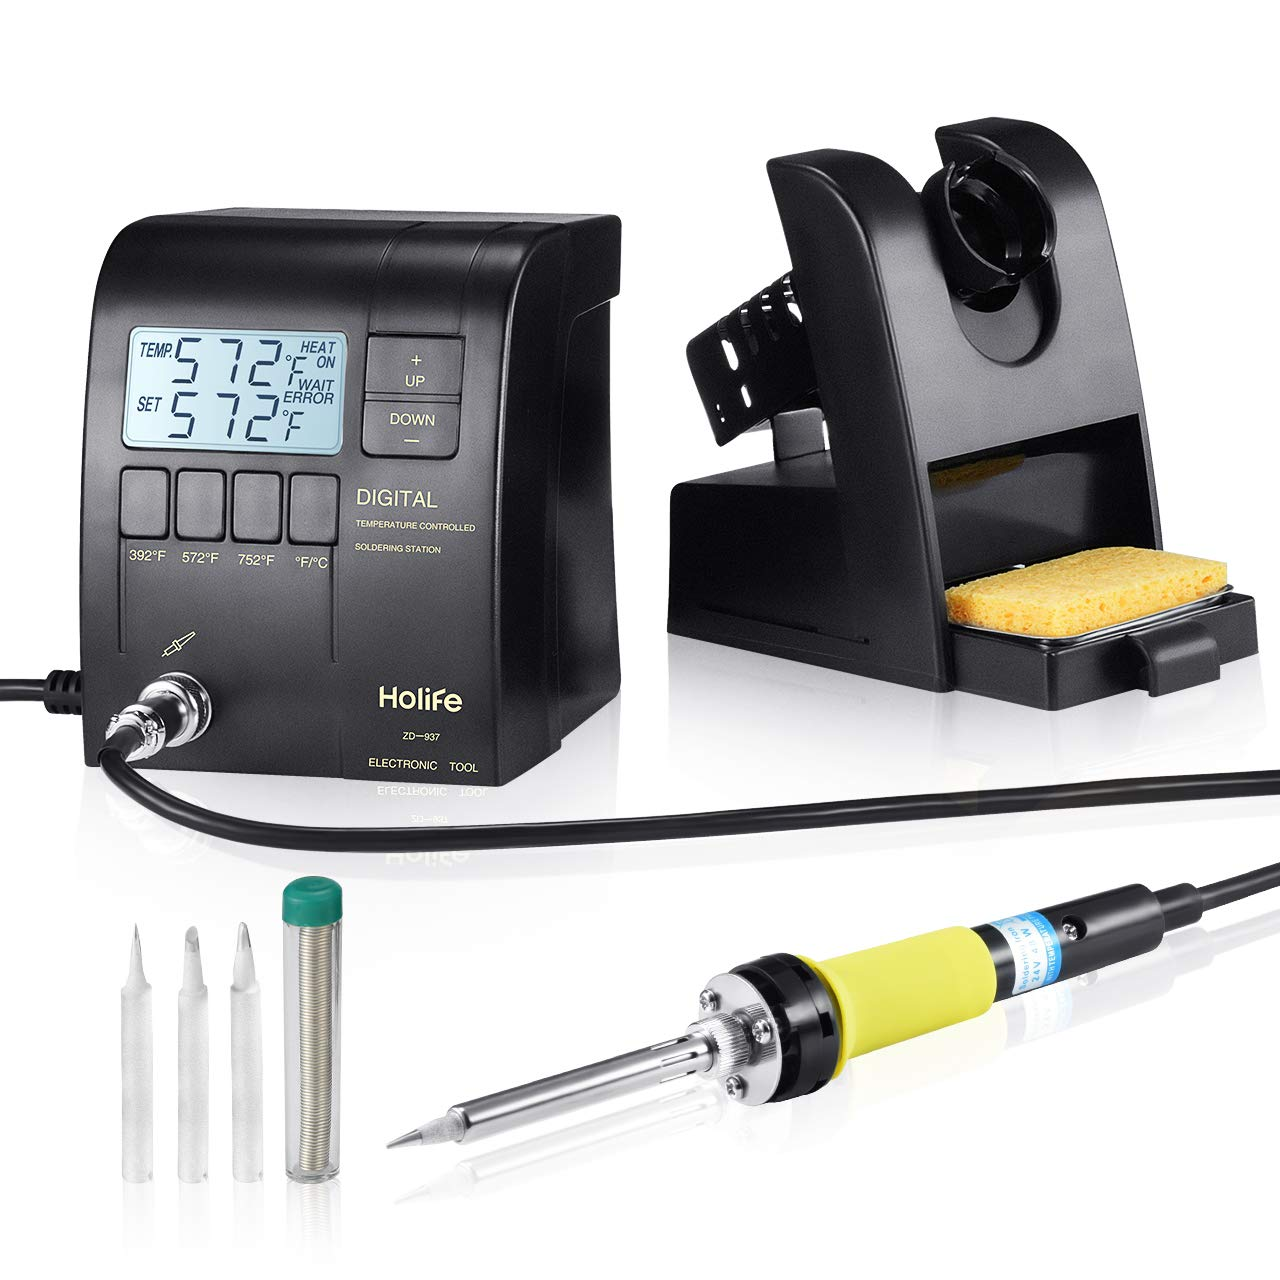 HoLife Digital Display Soldering Iron Station with ON/OFF Switch, Adjustable Temperature from 302℉ to 842℉, Solder Holder with Cleaning Sponge,℃/℉ Switch, 3 Pcs Soldering Iron Tips, Solder Wire, Black